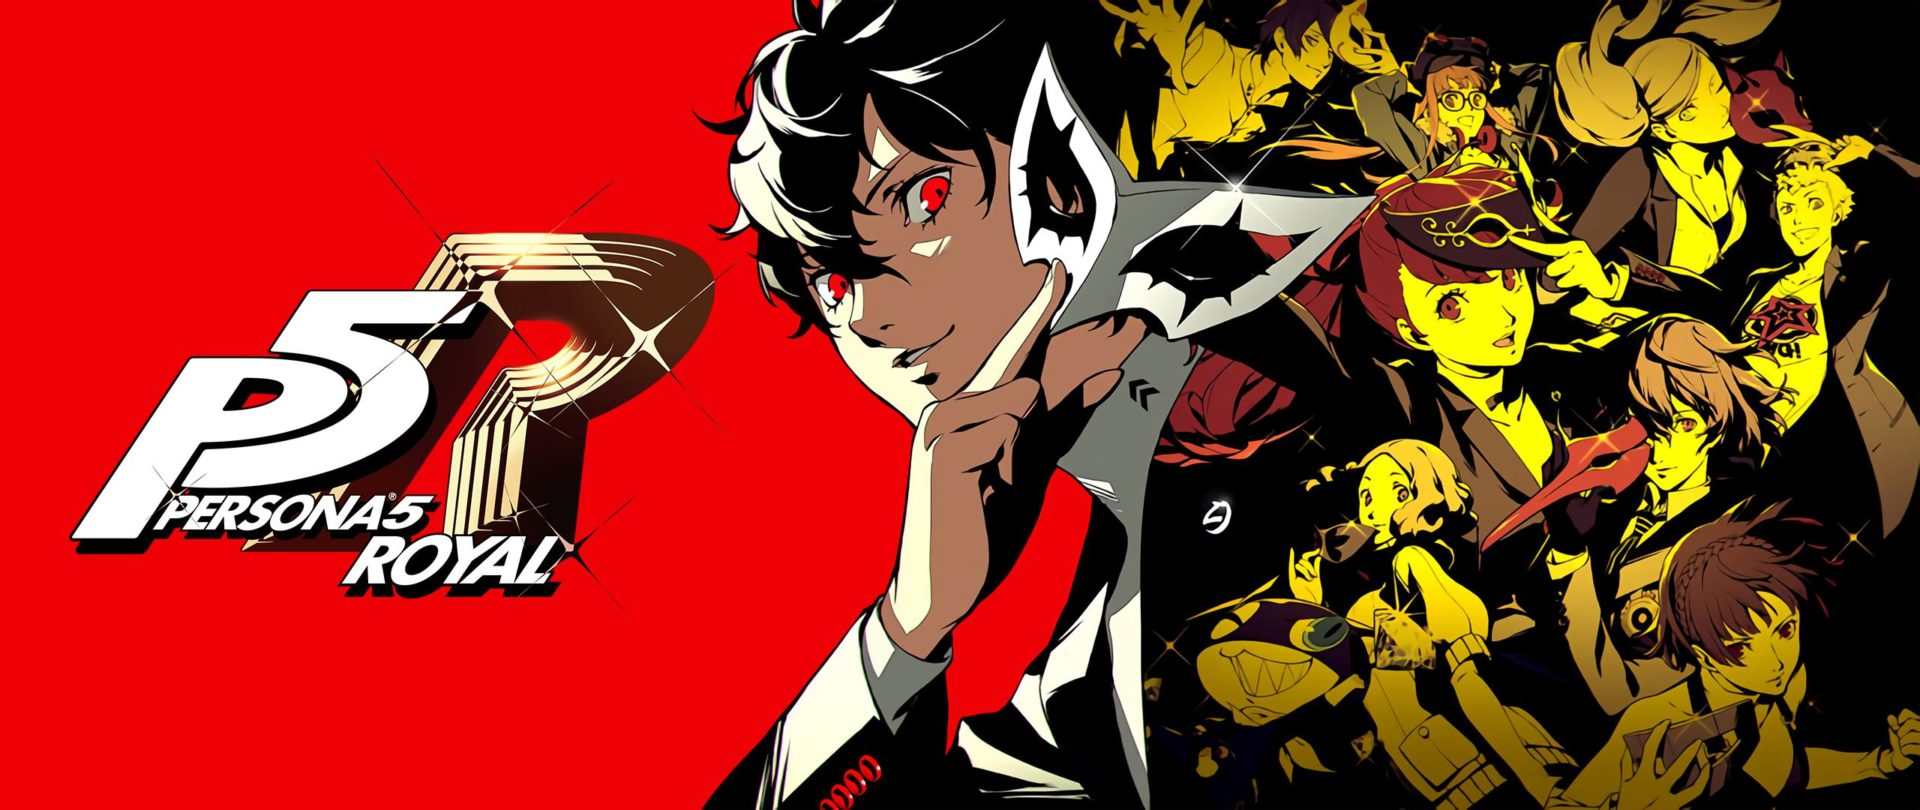 4k Hd Persona 5 Wallpapers You Need To Make Your Desktop Background